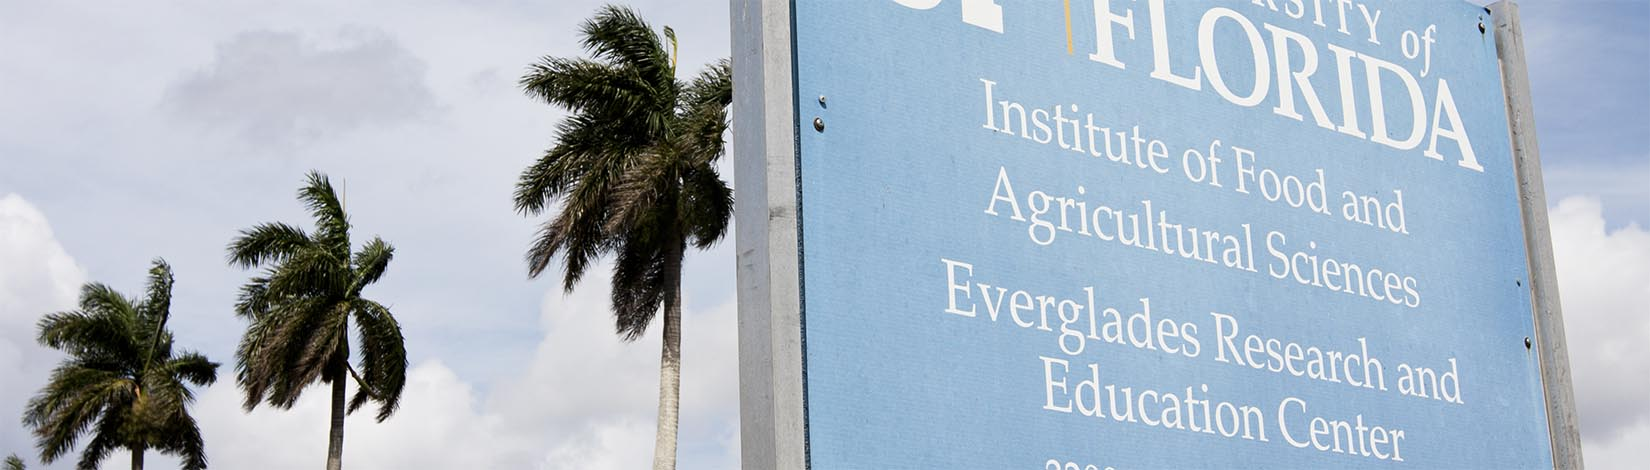 UF/IFAS Sign - Everglades Research And Education Center